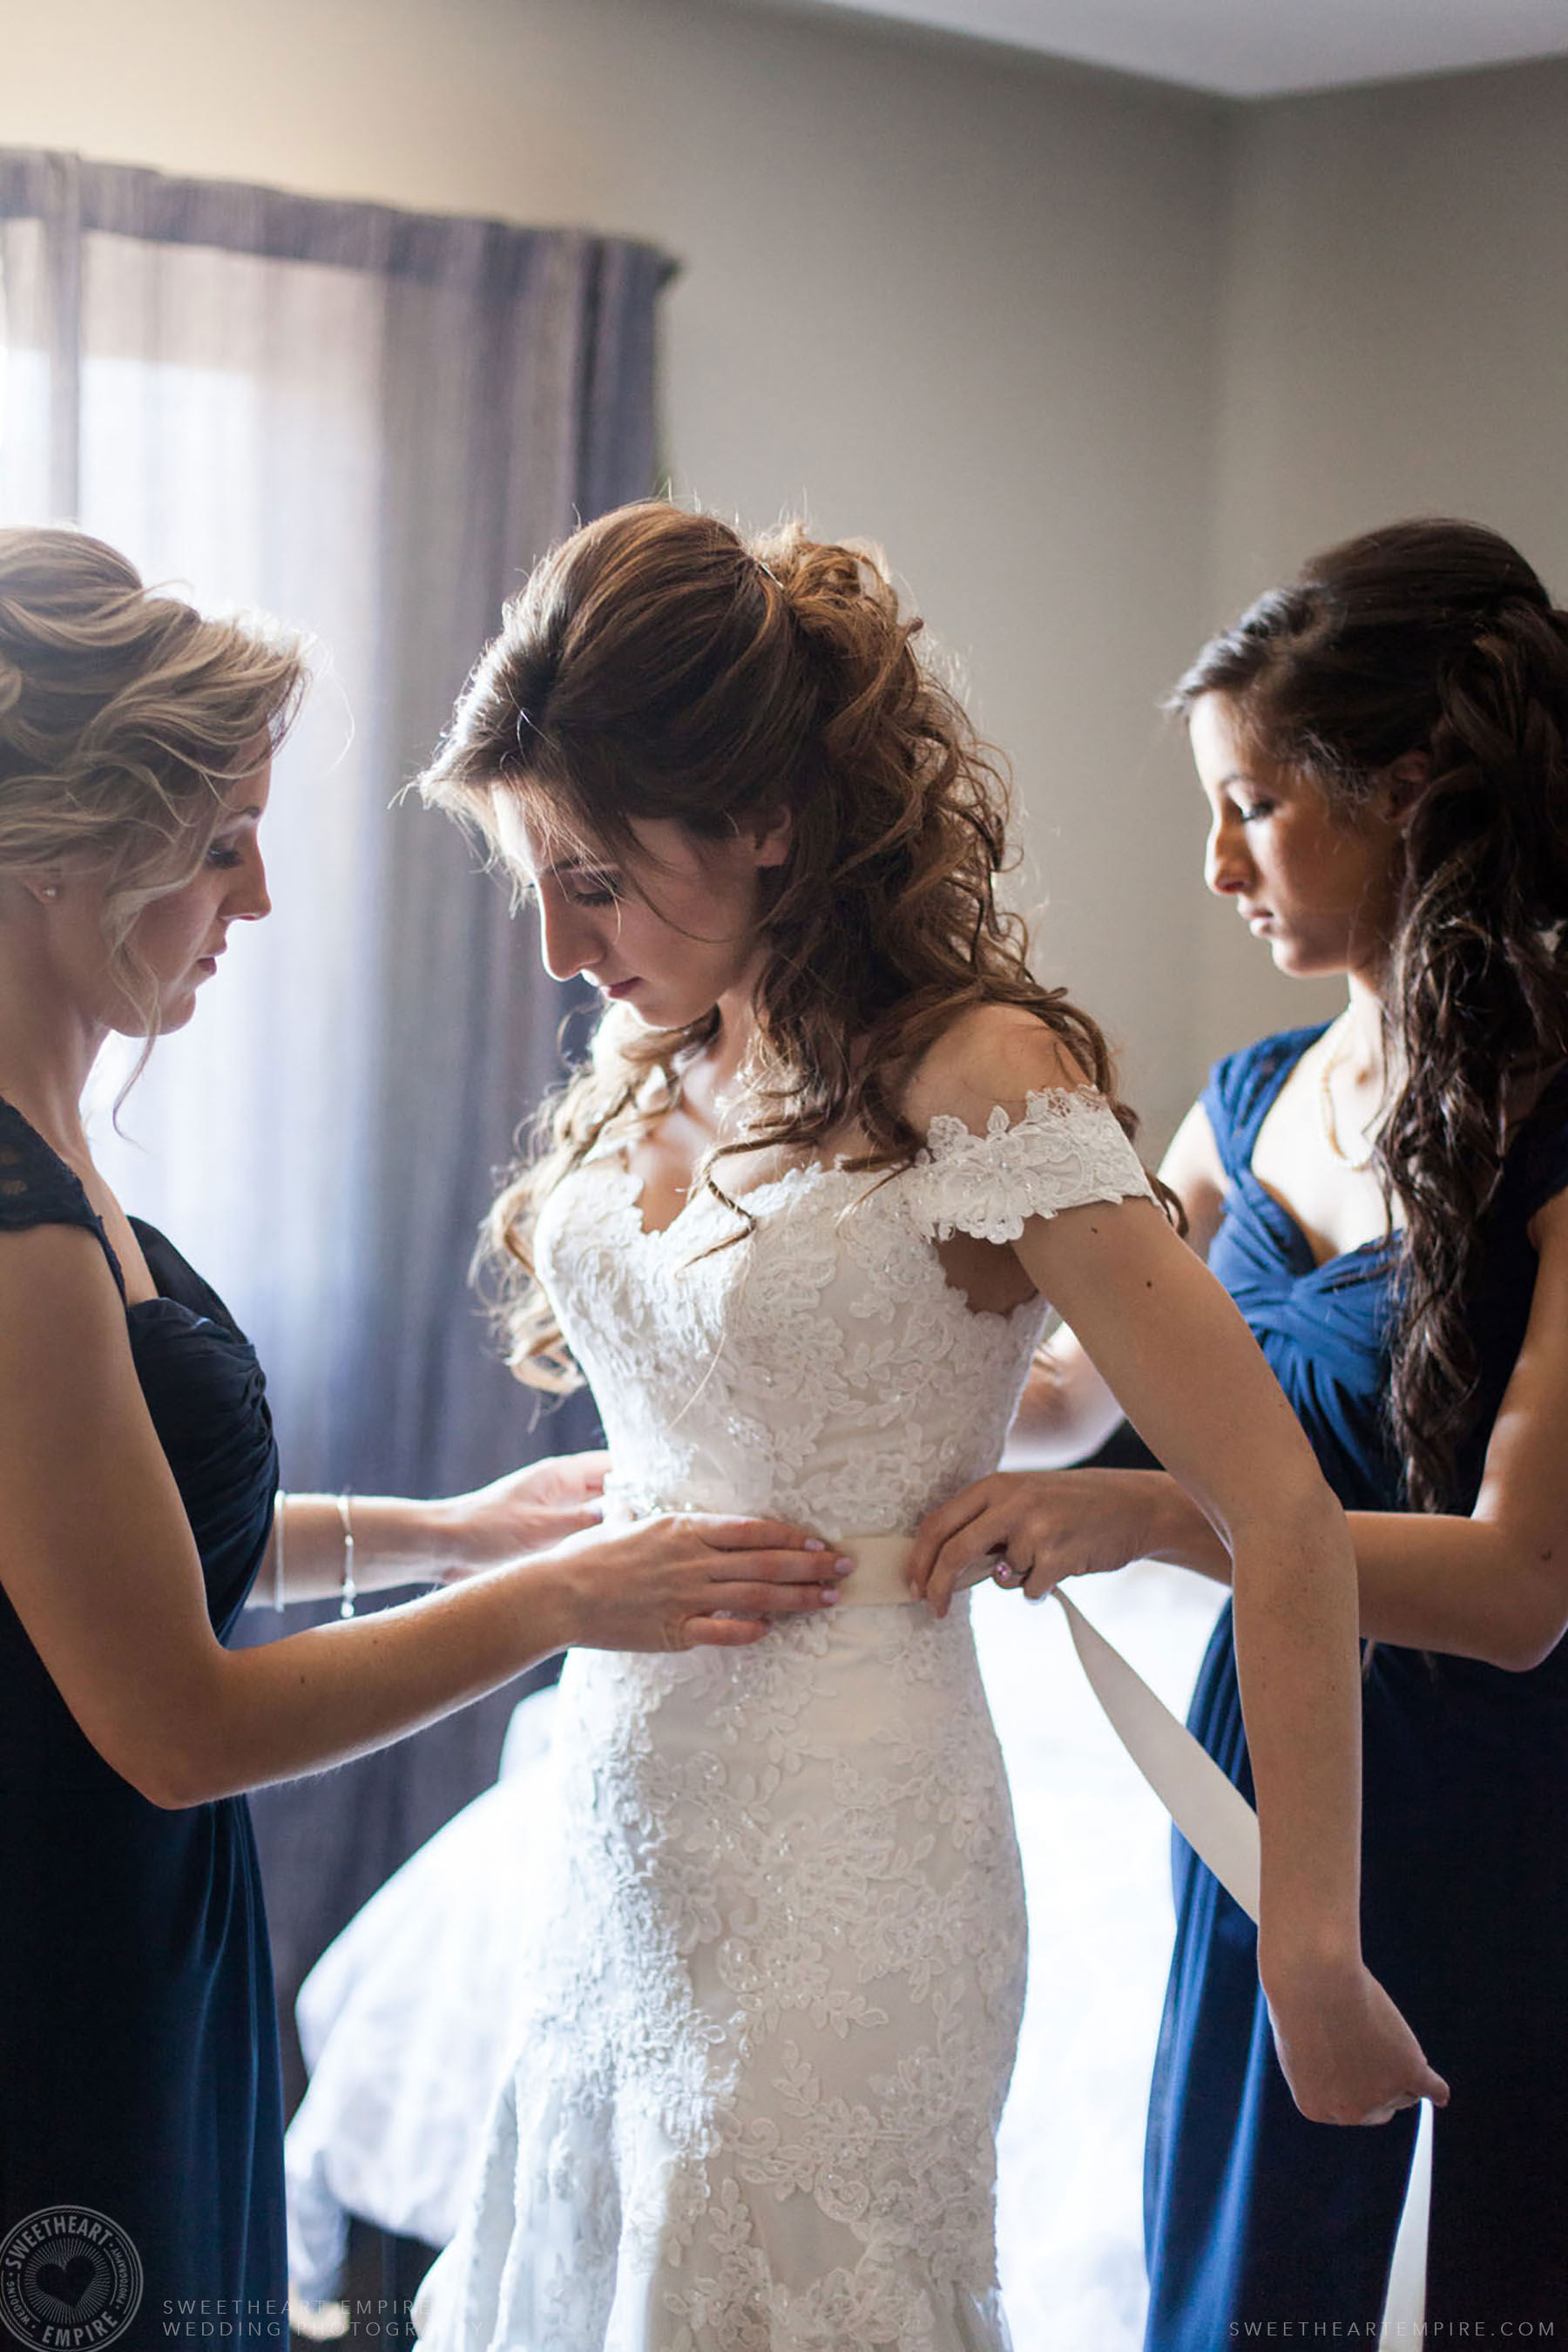 Bride getting ready with her bridesmaids, Eagles Nest Wedding Photos